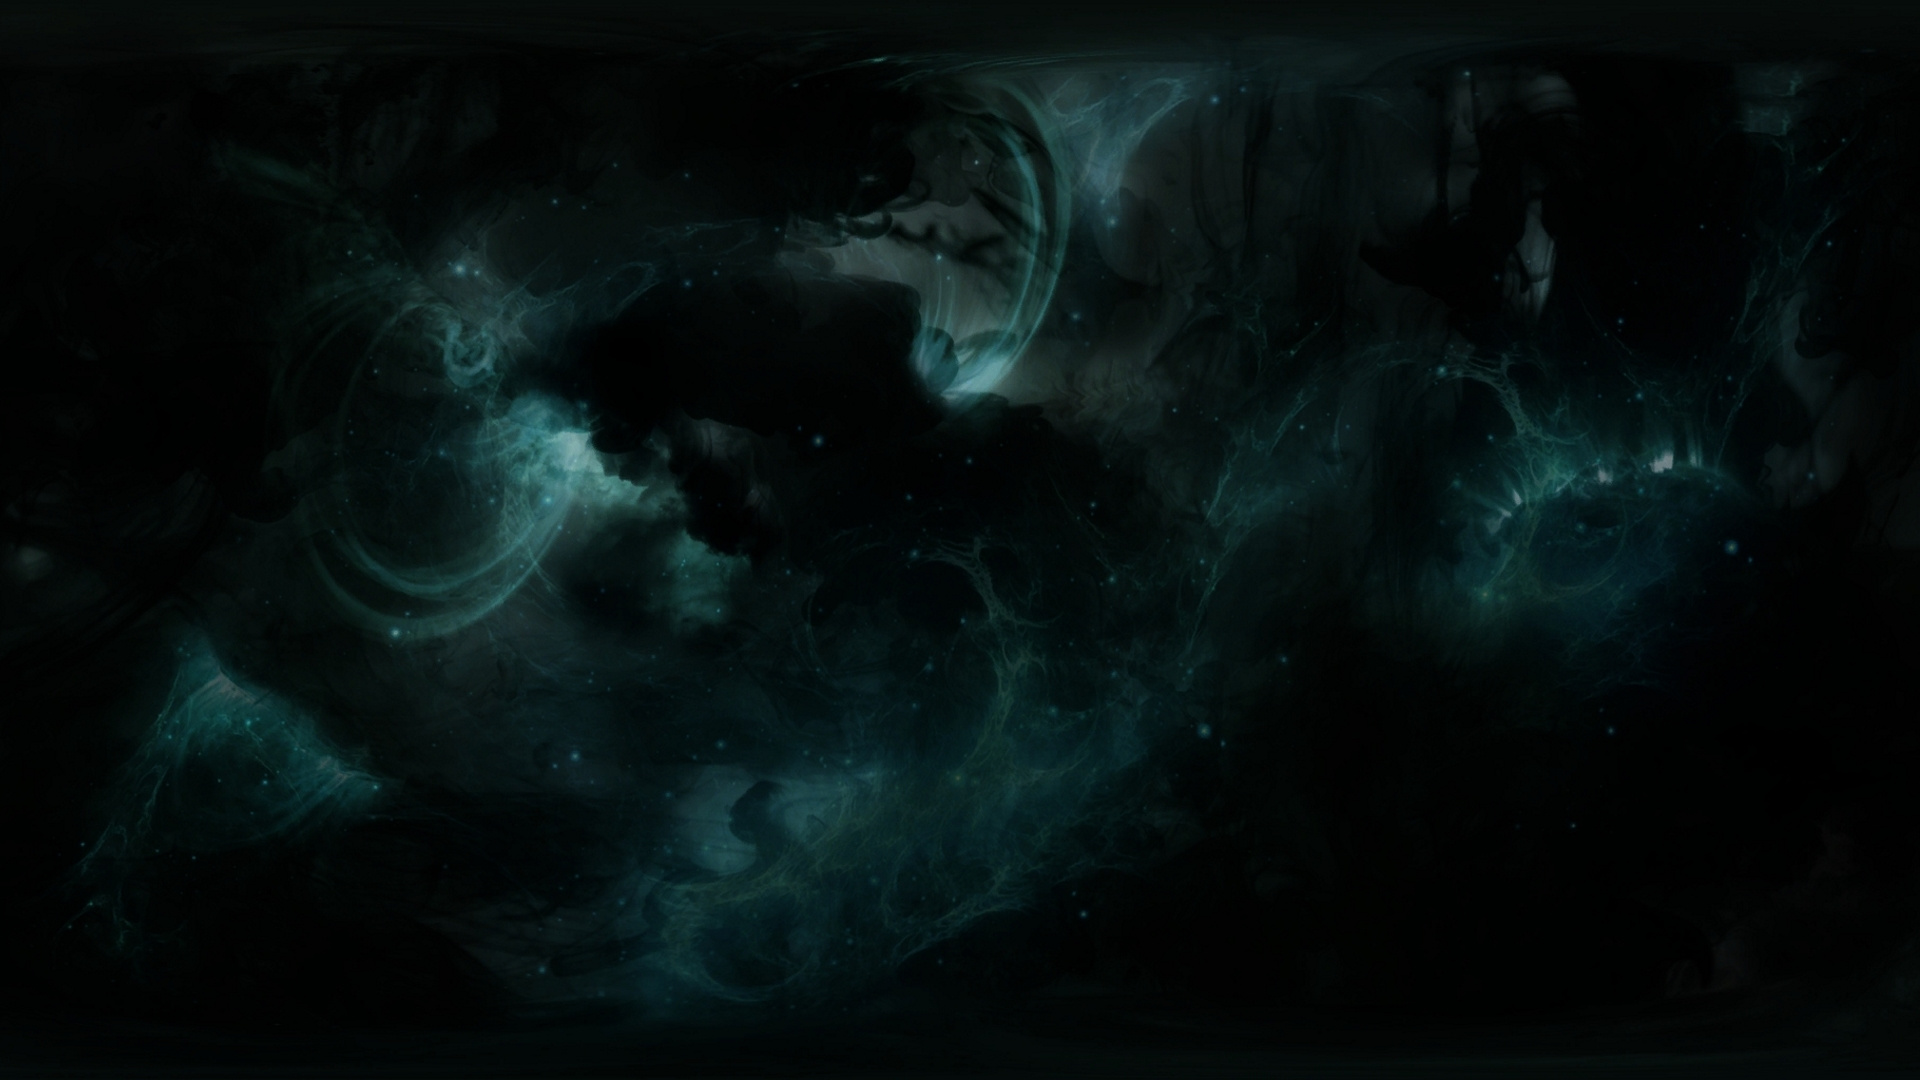 Warframe Void Background 1920x1080 Warframe 1920x1080